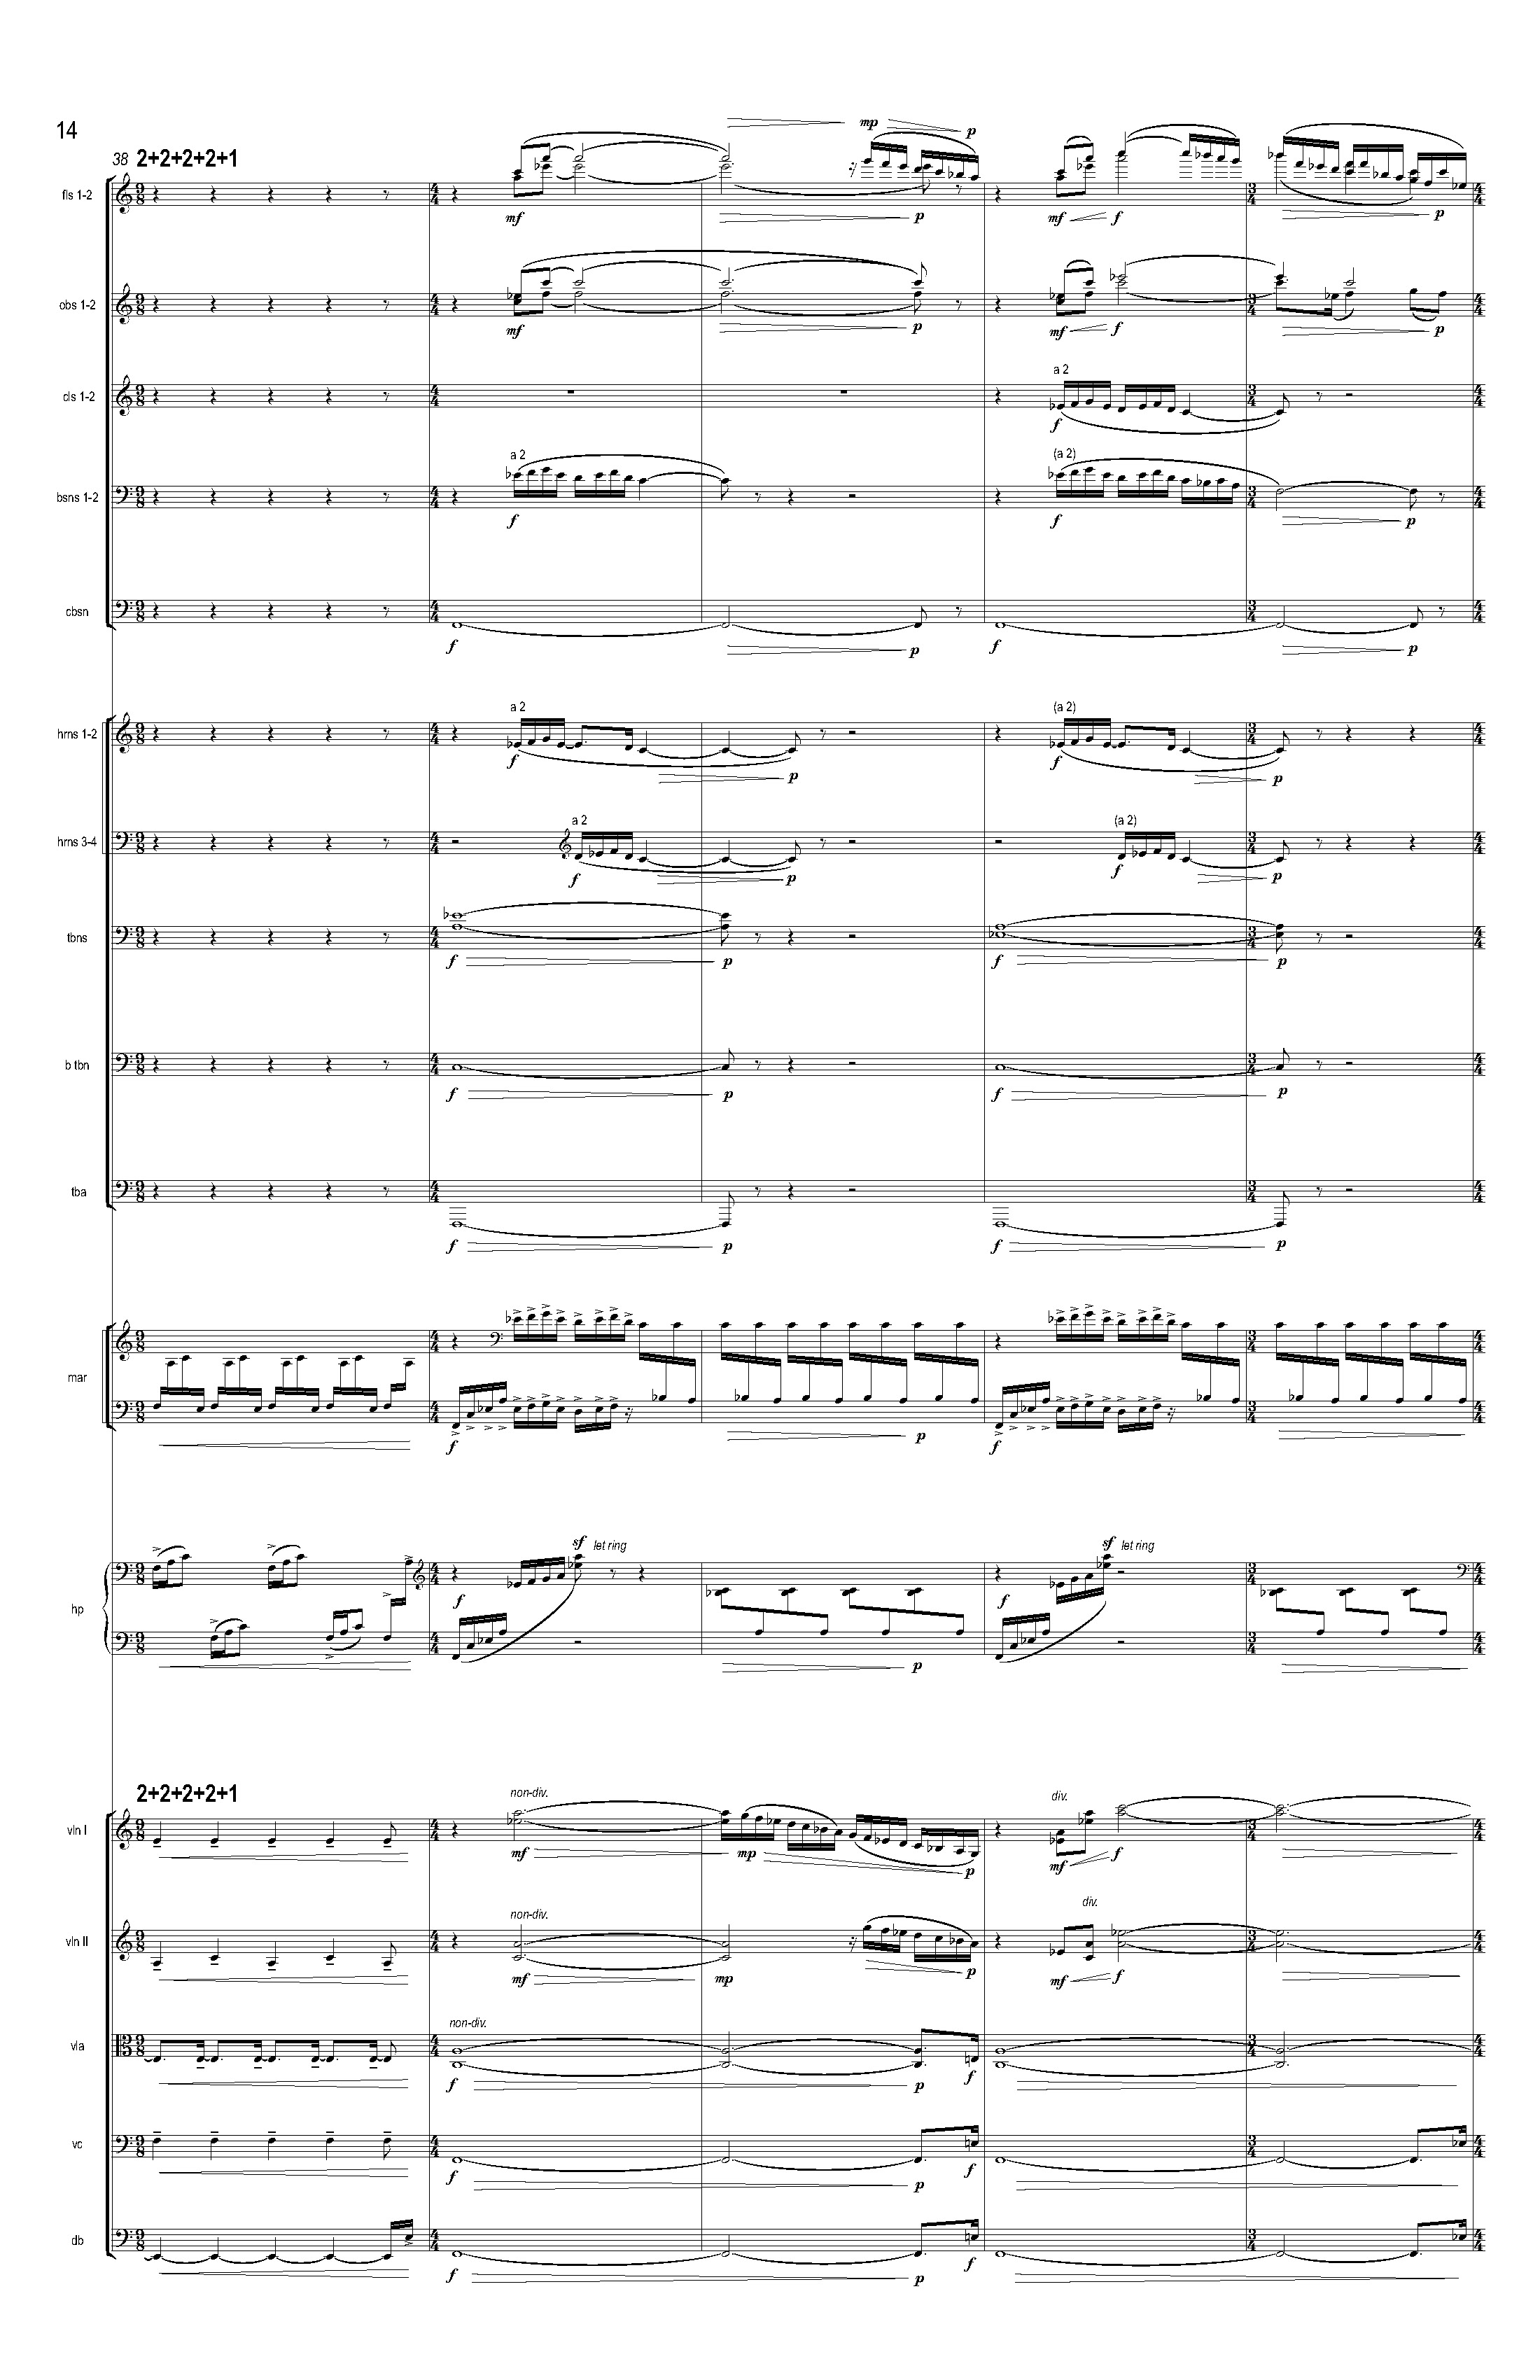 Ciach_Collective Uncommon REVISED_Full Score (Feb 2017)_Seite_20.jpg